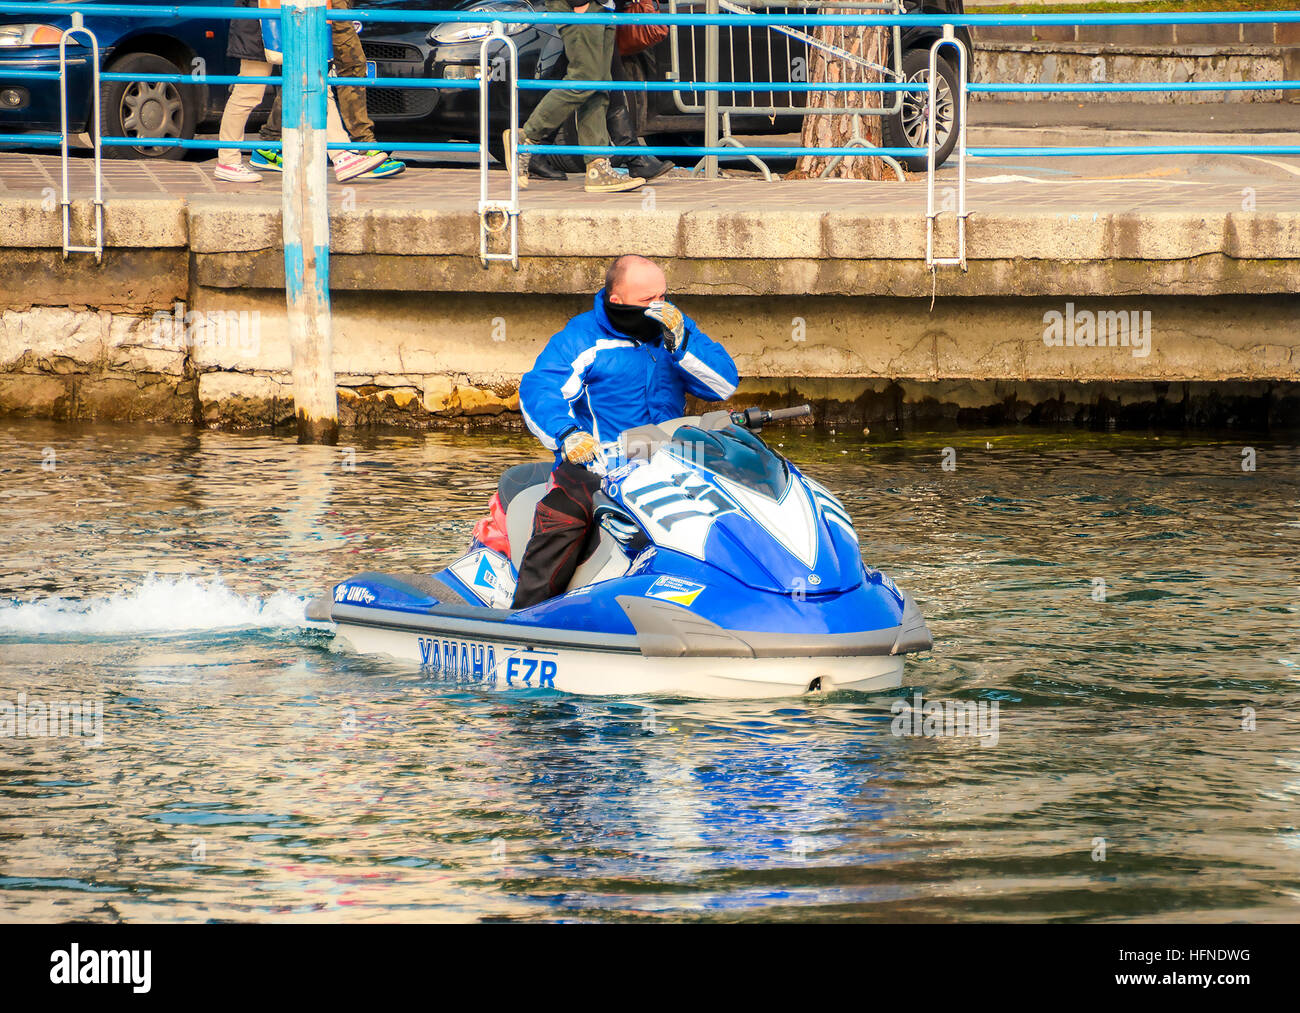 man on a blue ski jet watercraft in winter - Stock Image